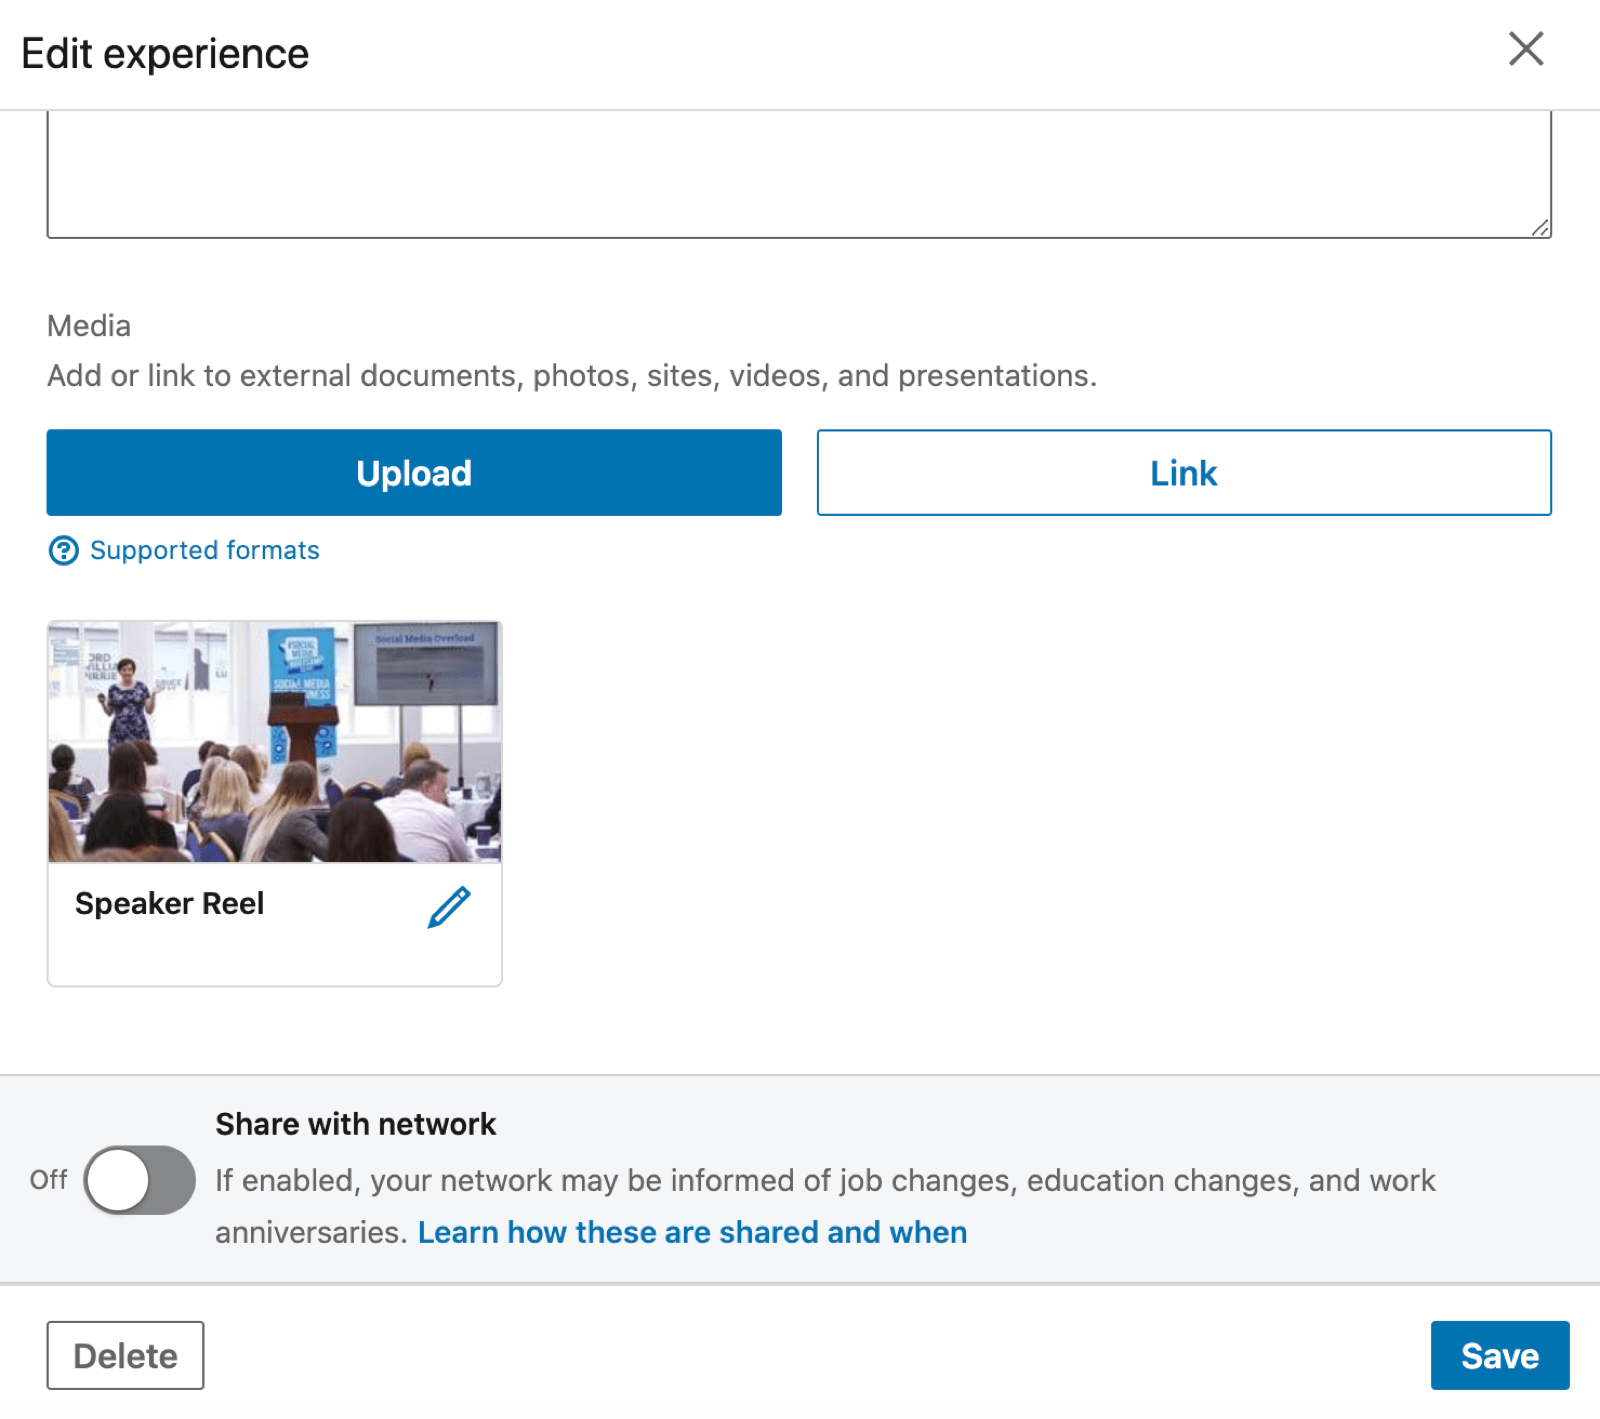 linkedin experience section showing the option to upload an external video, among other items